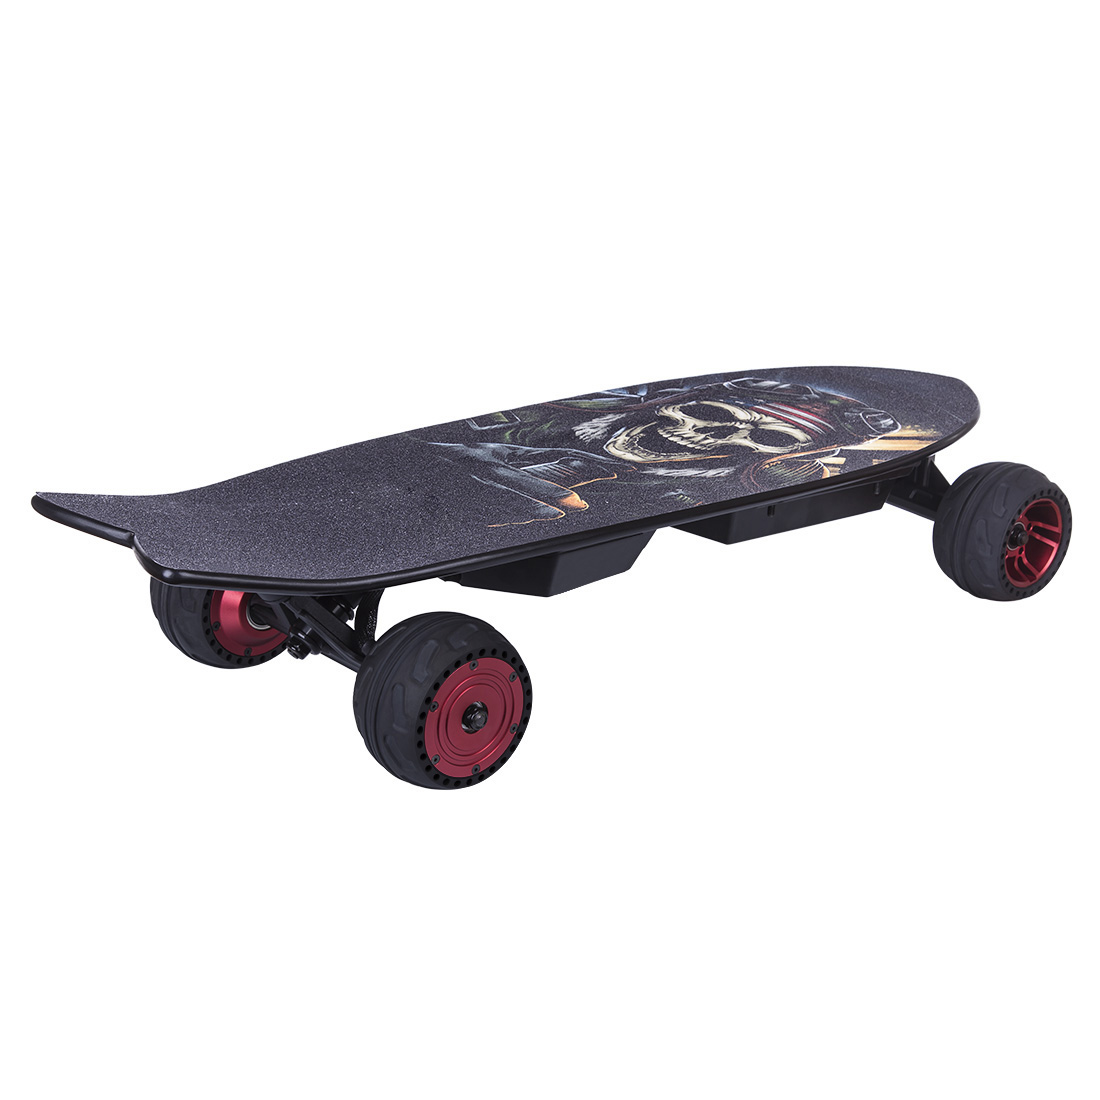 SEEKER Mini 2 Electric Skateboard